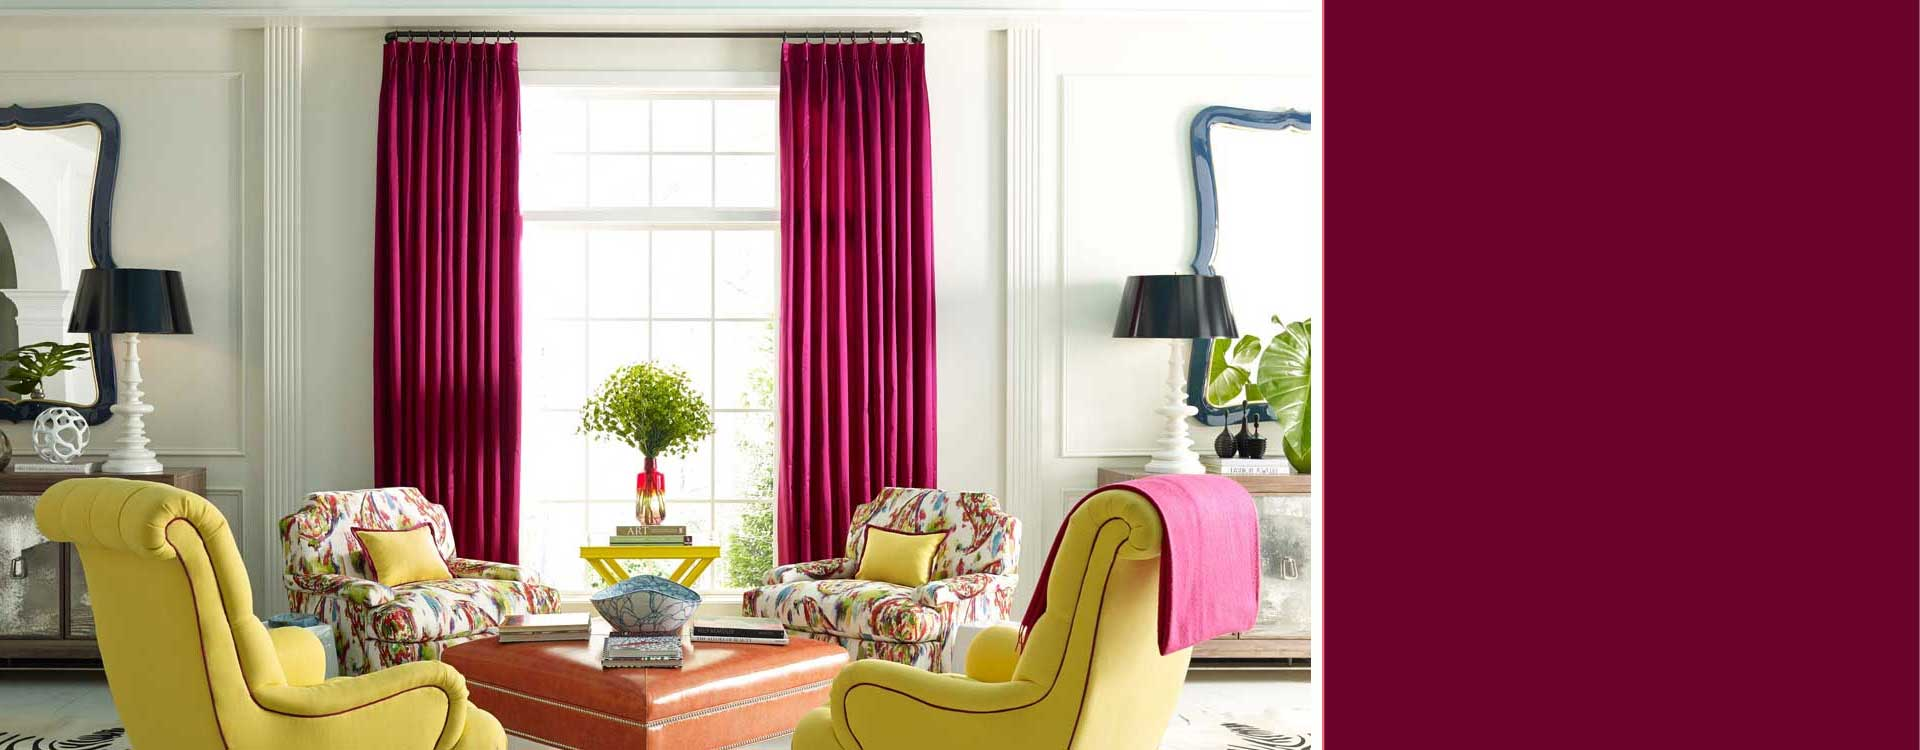 and p drapes suitable nice also hotel in home curtains for are stylish design